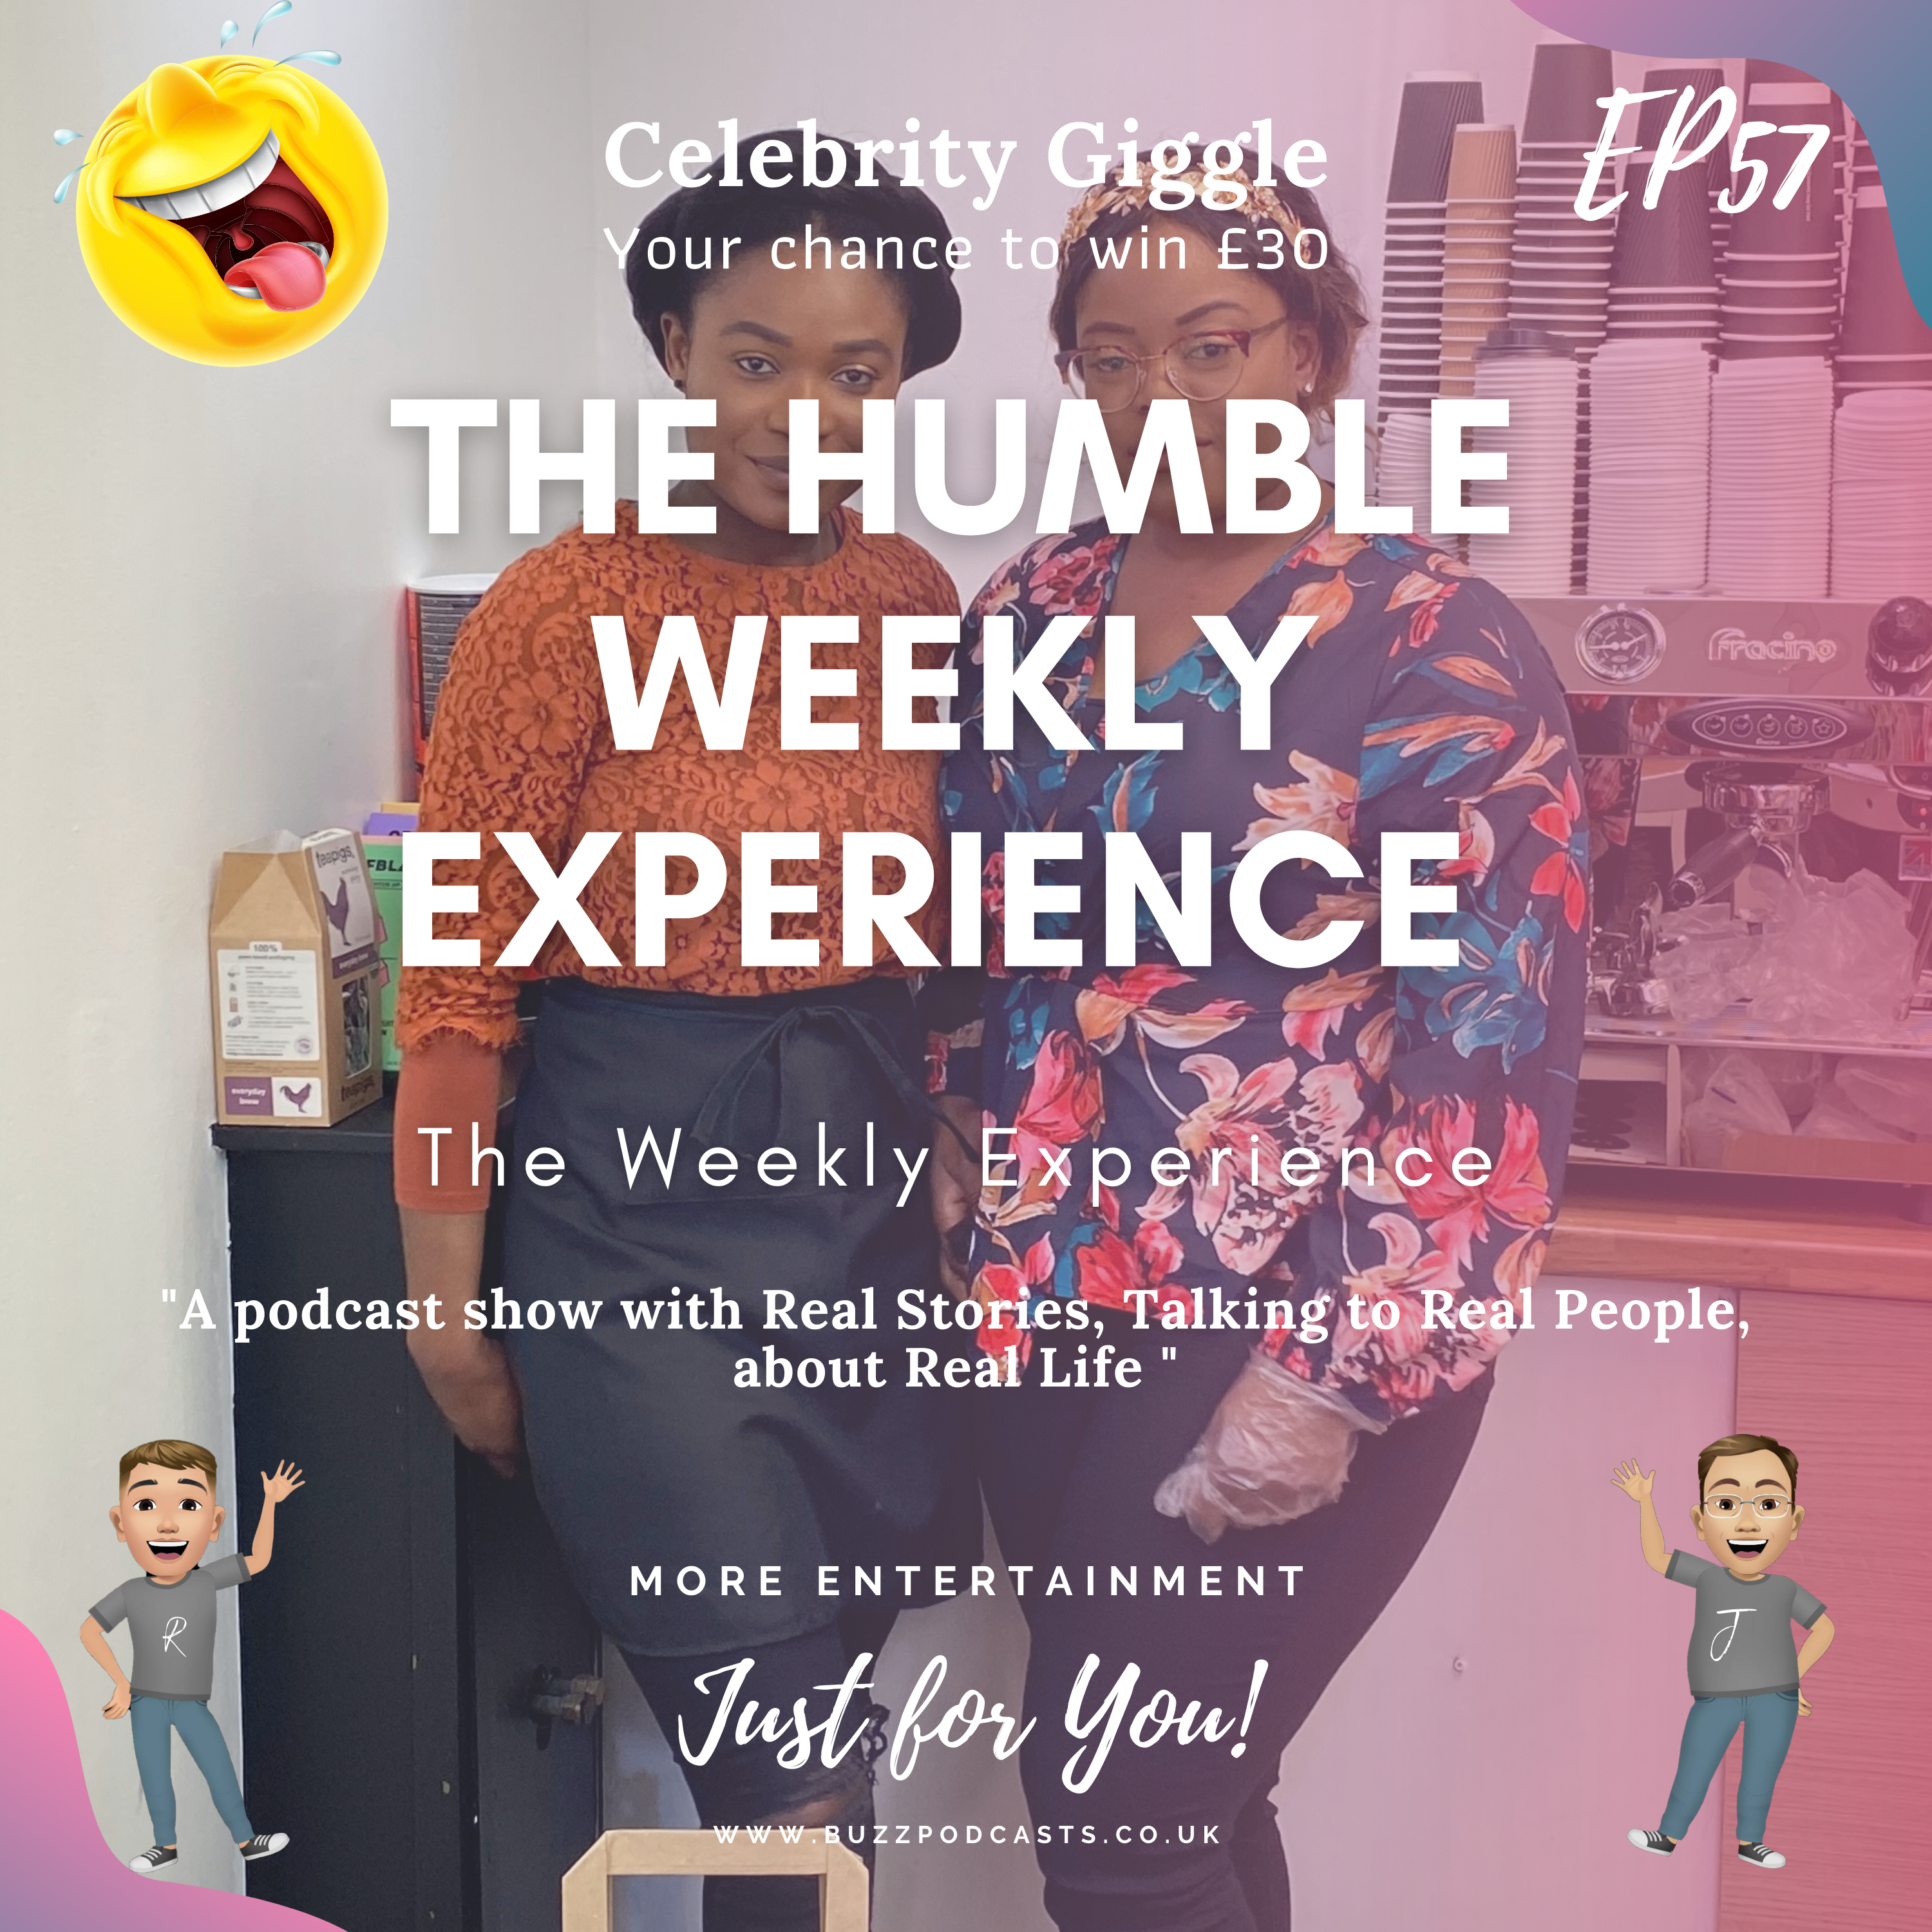 The Humble Weekly Experience